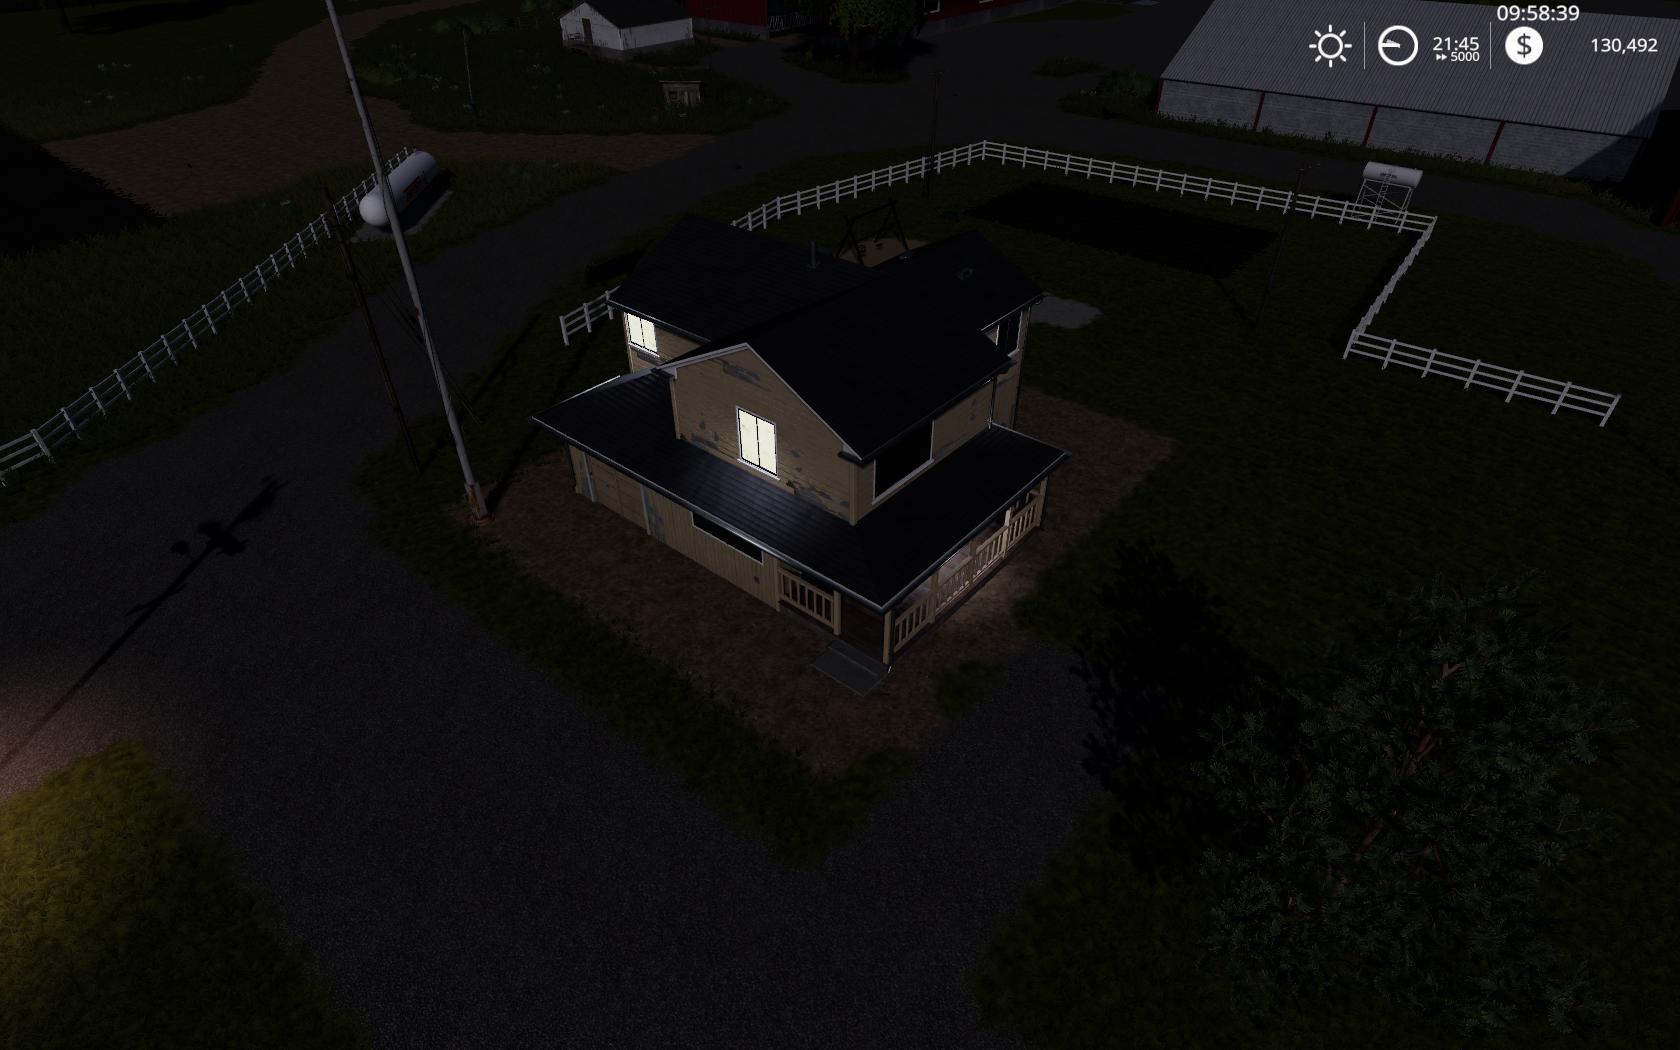 Placeable 4 bedroom house with sleep trigger v 1.0